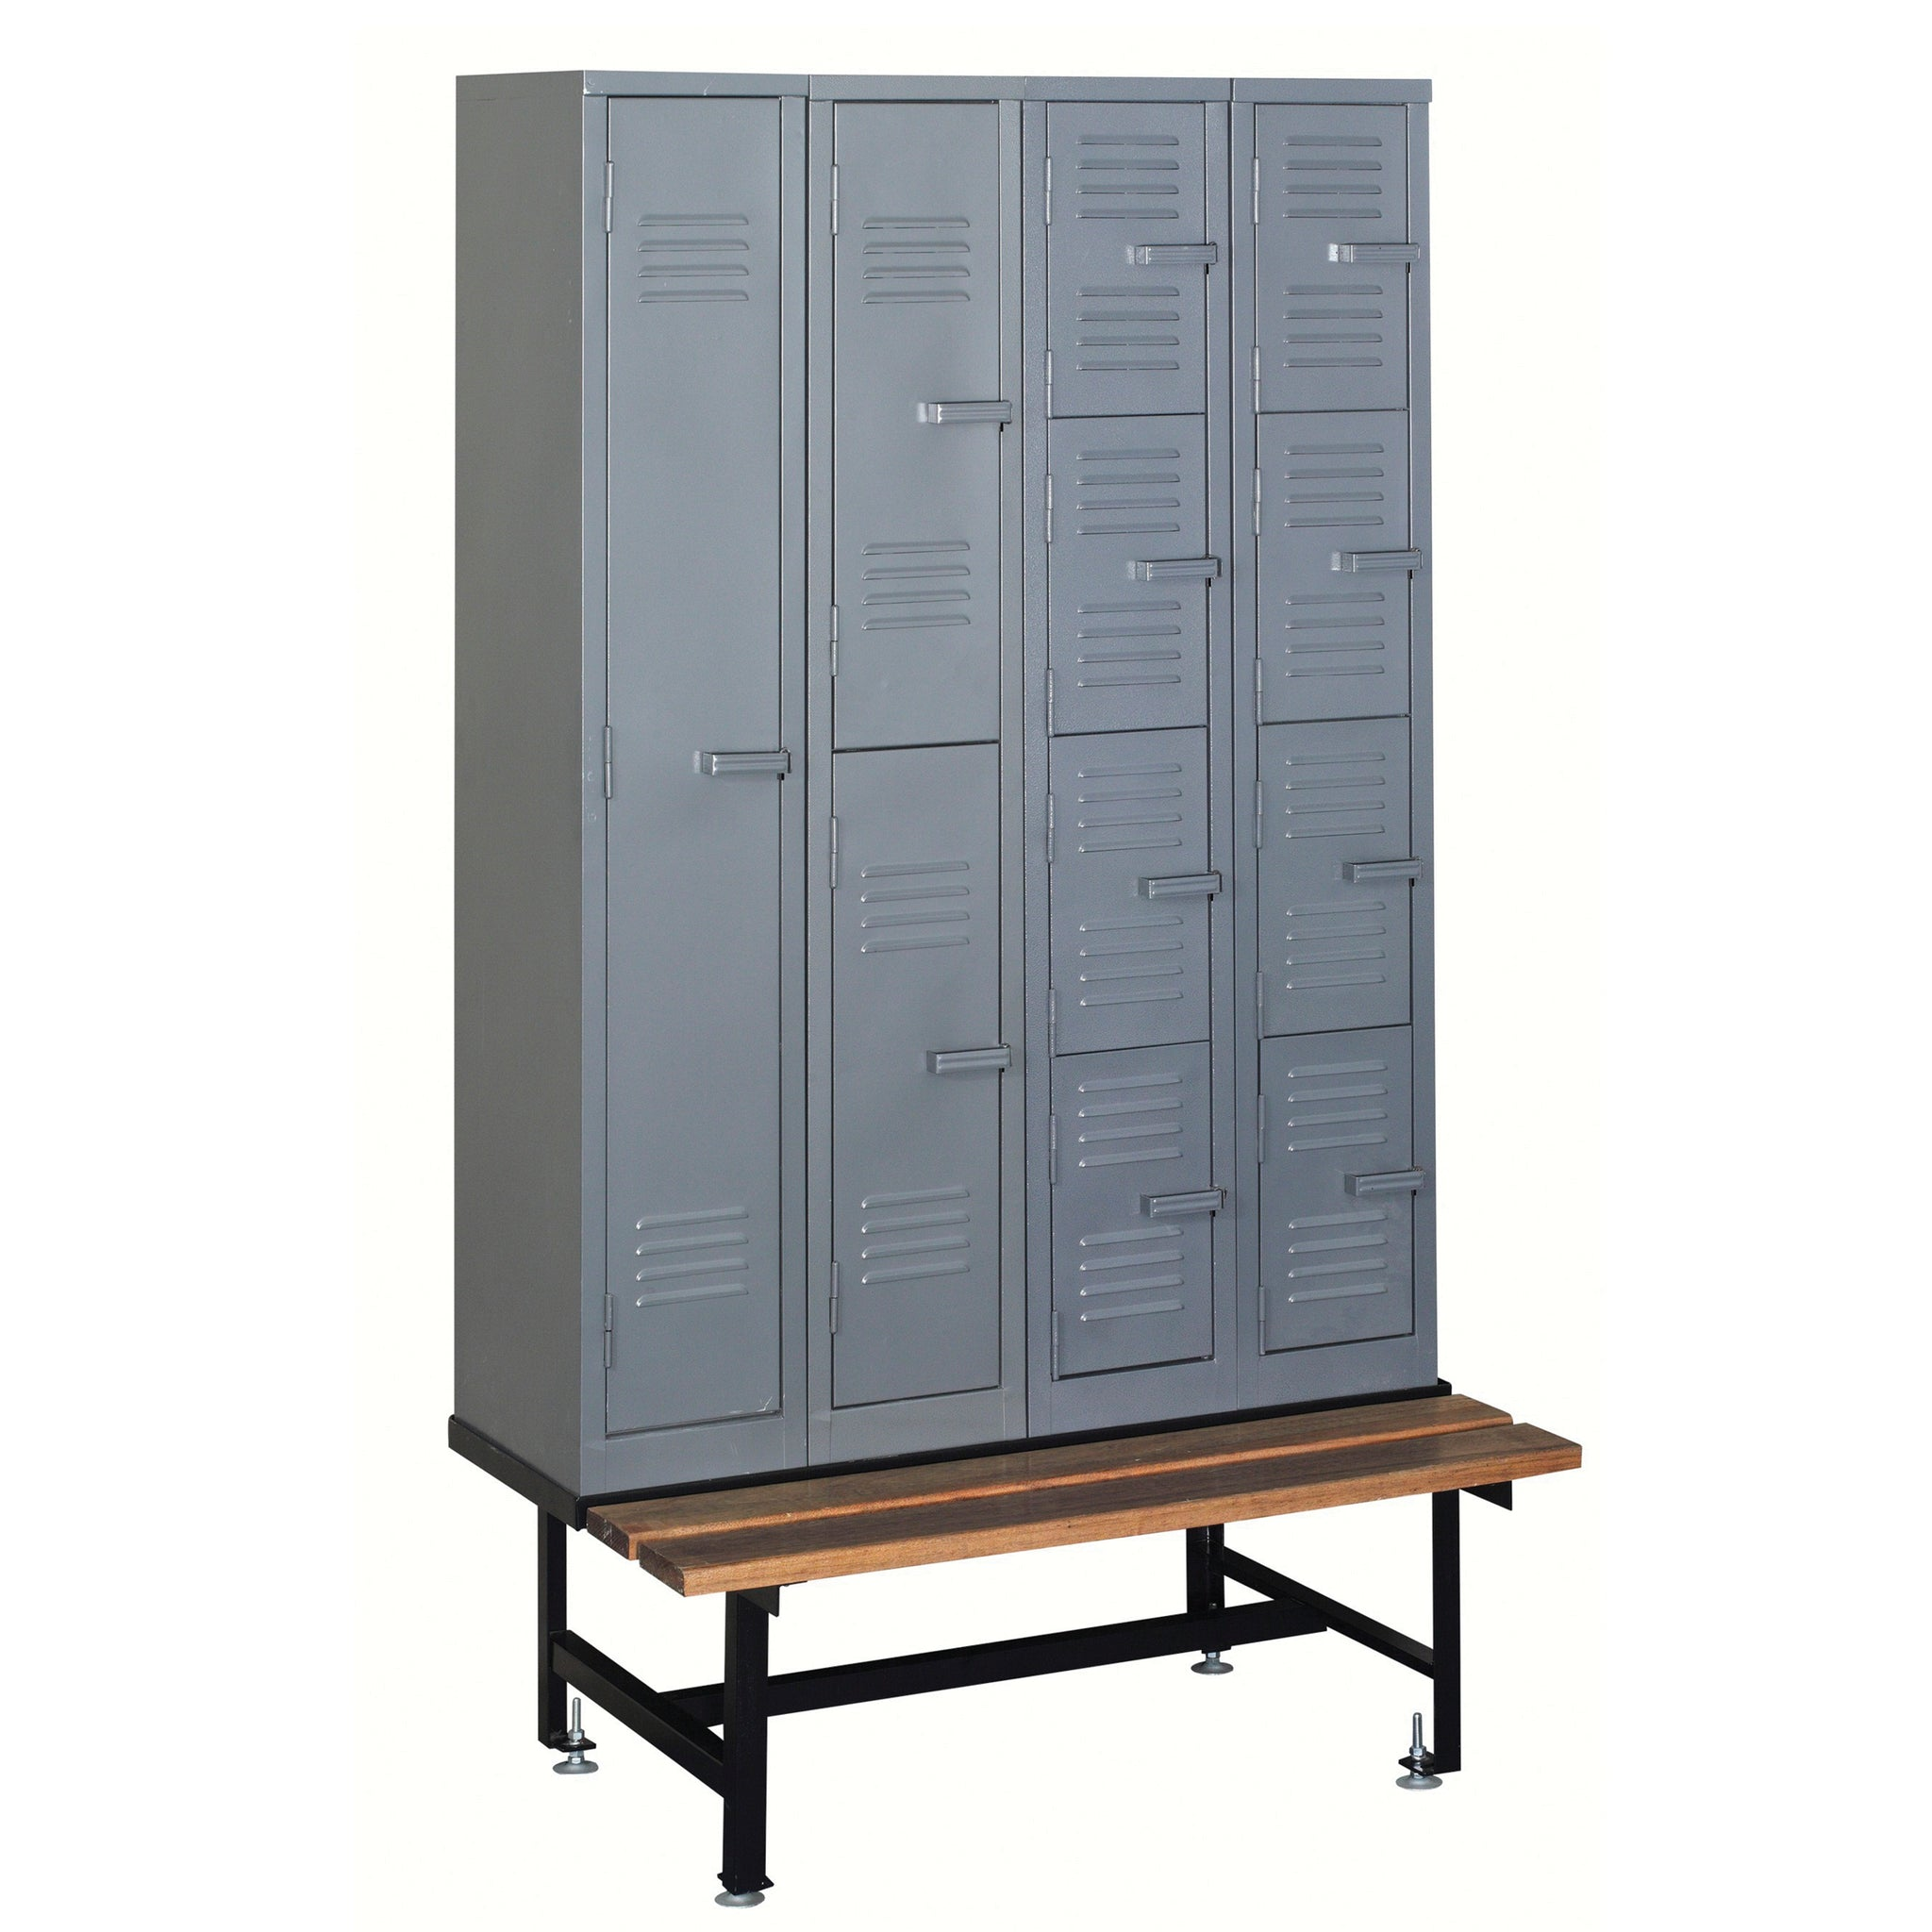 Hedcor Bench Locker